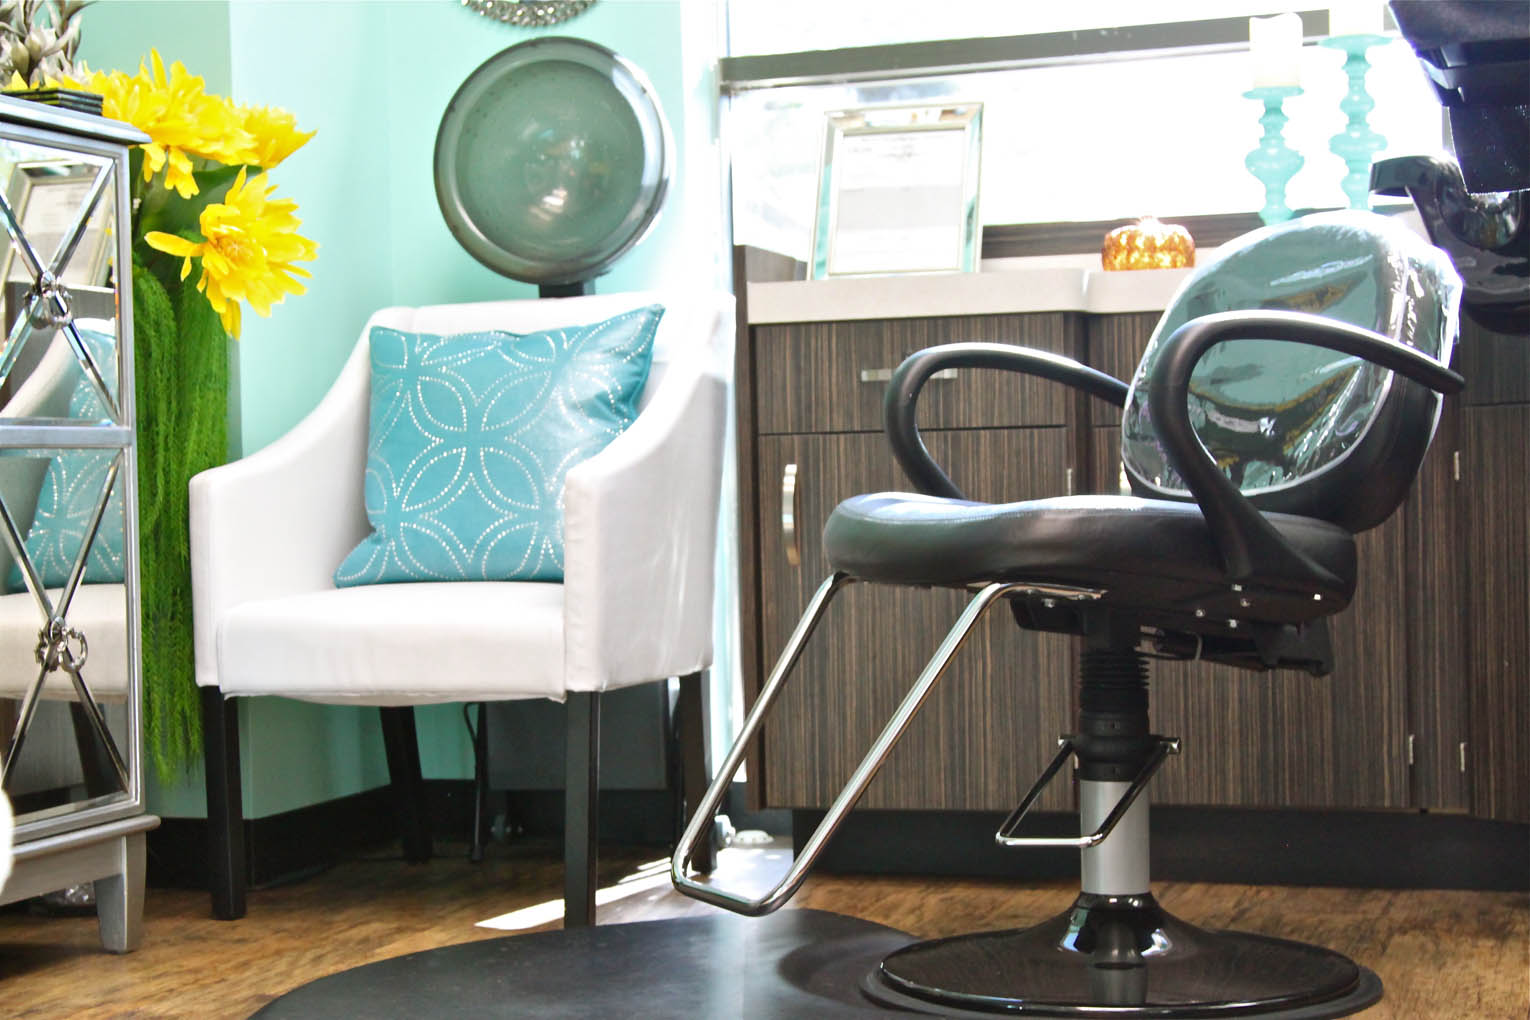 The interior of a salon studio